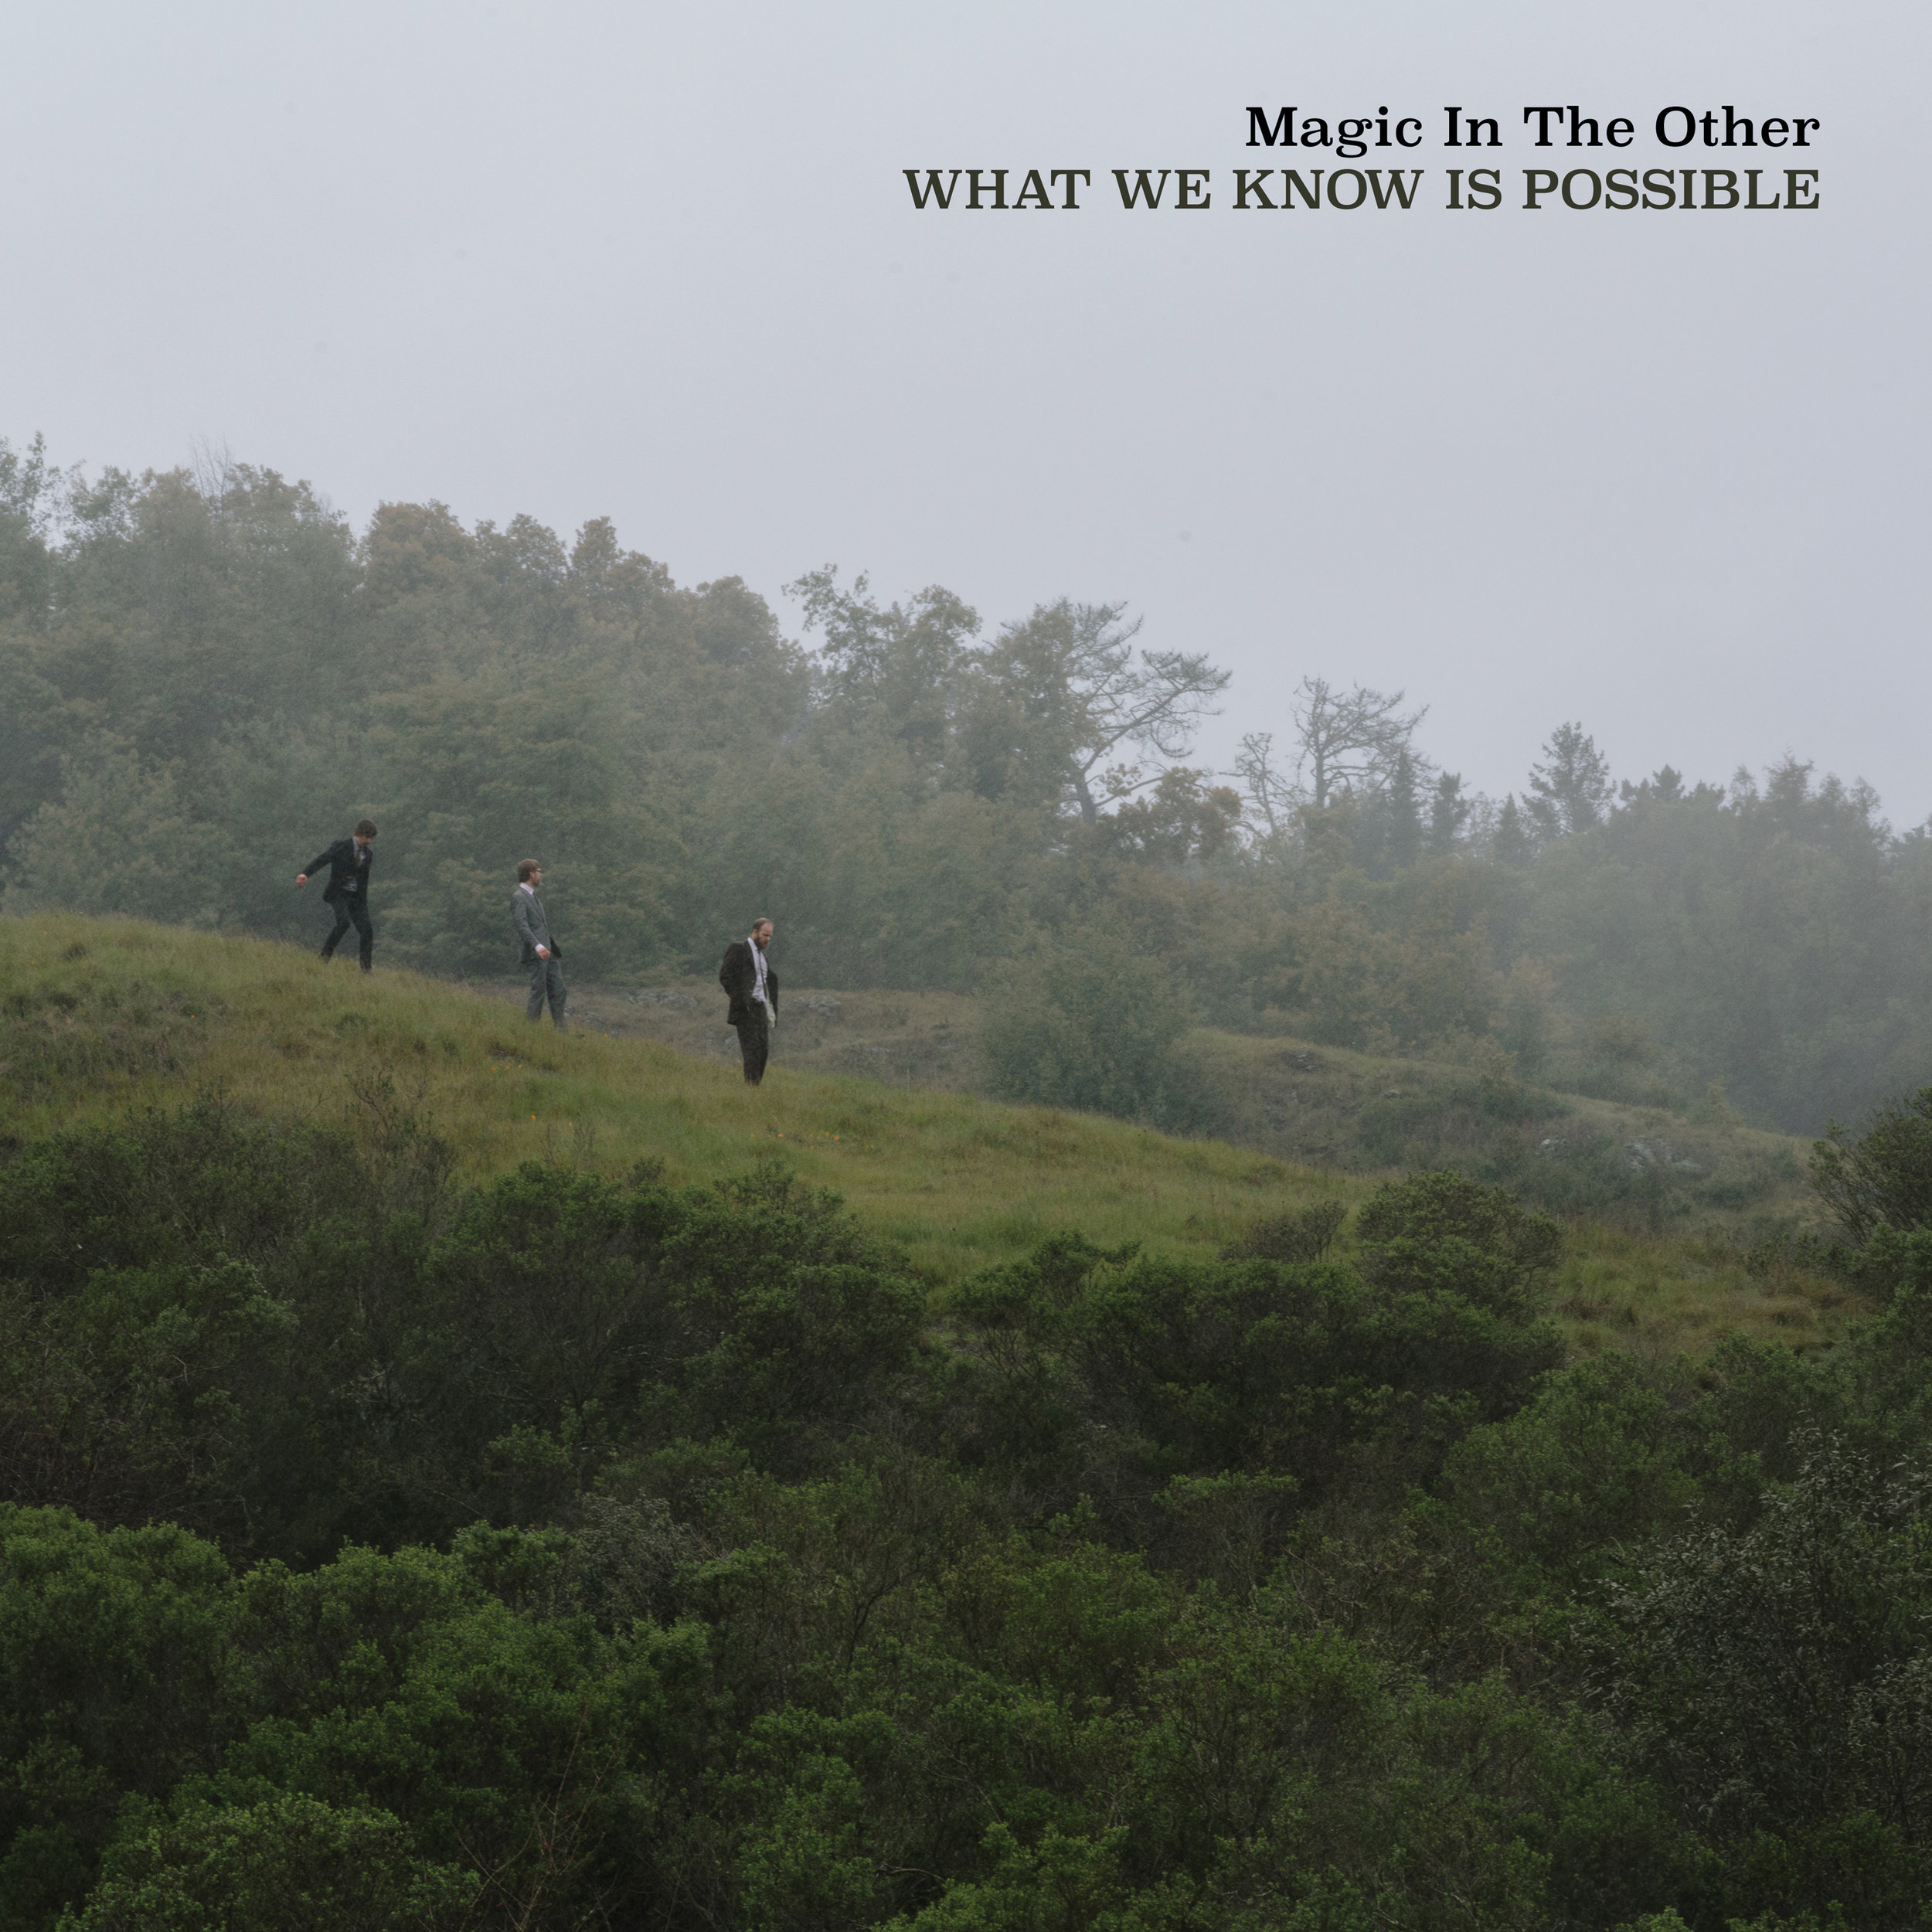 Magic In The Other -What We Know Is Possible Cover_3000x3000-300dpi.jpg